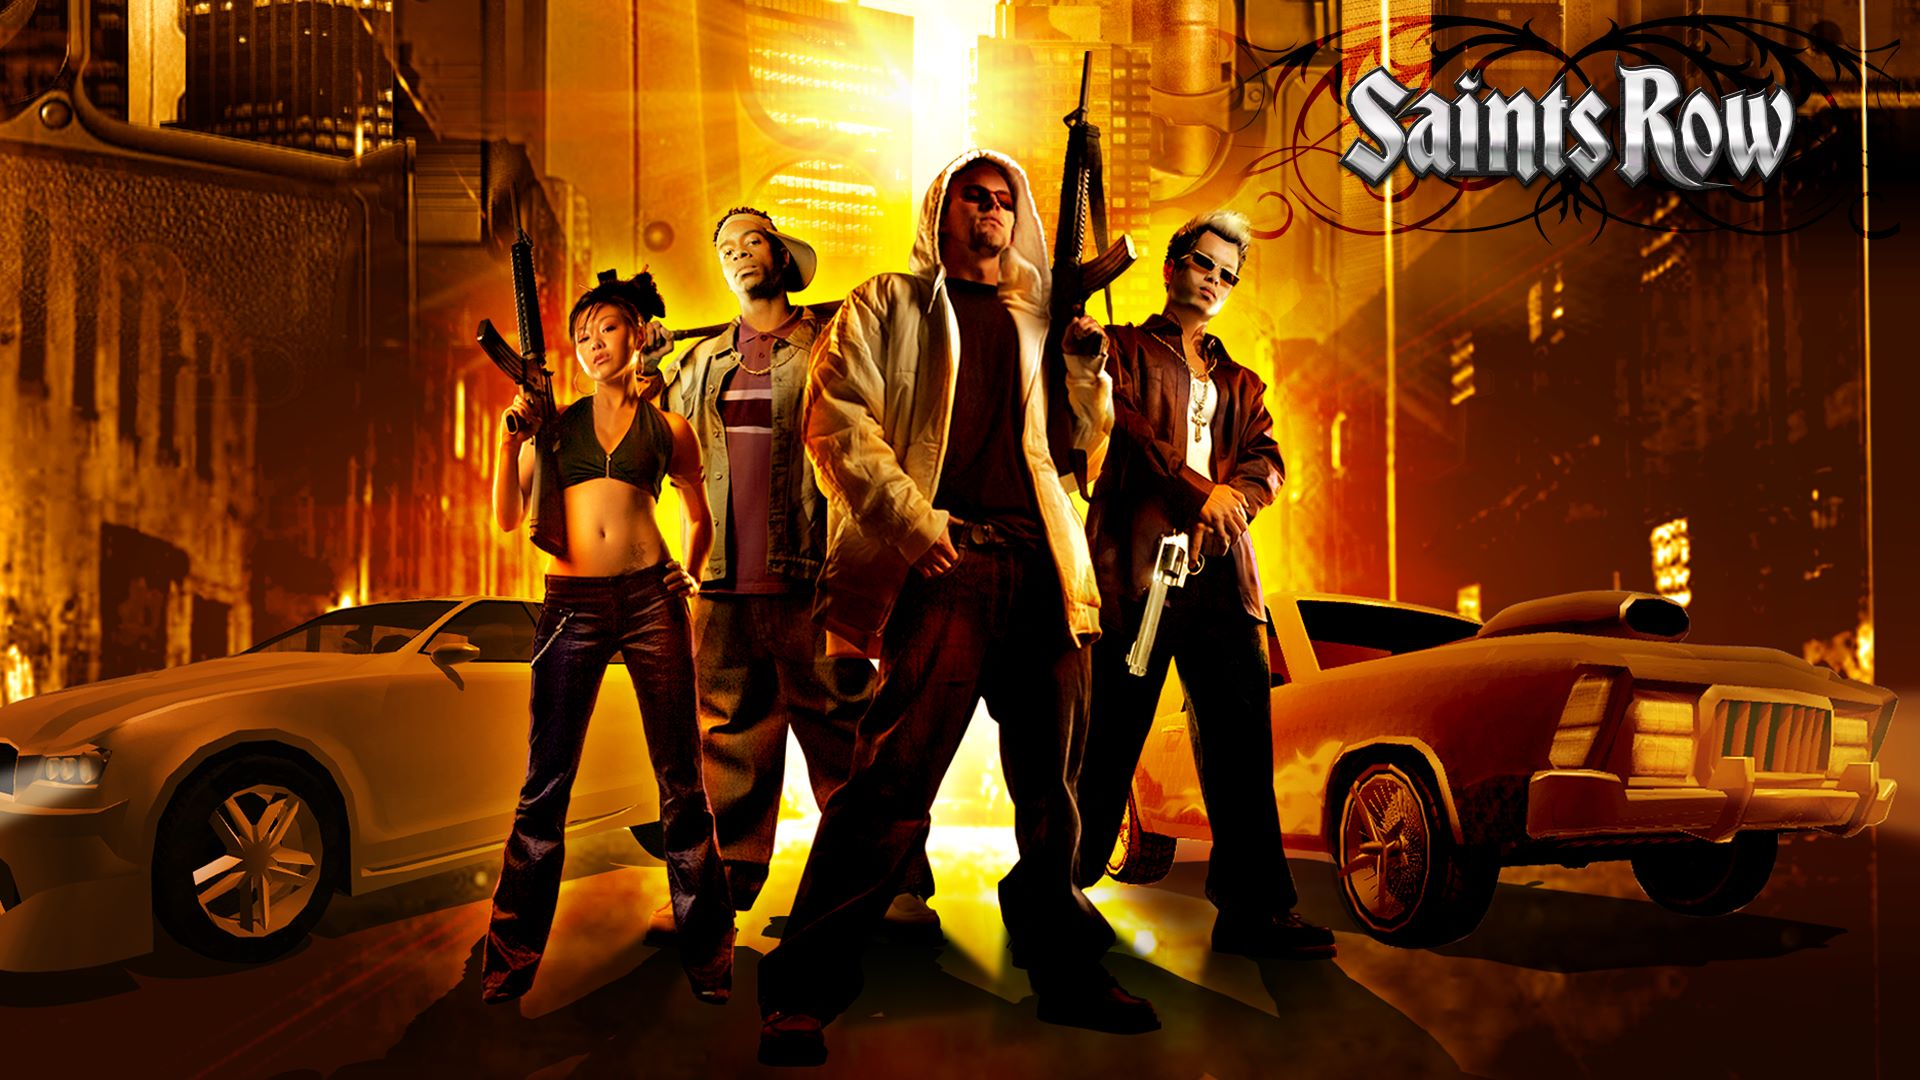 saints row the third download size